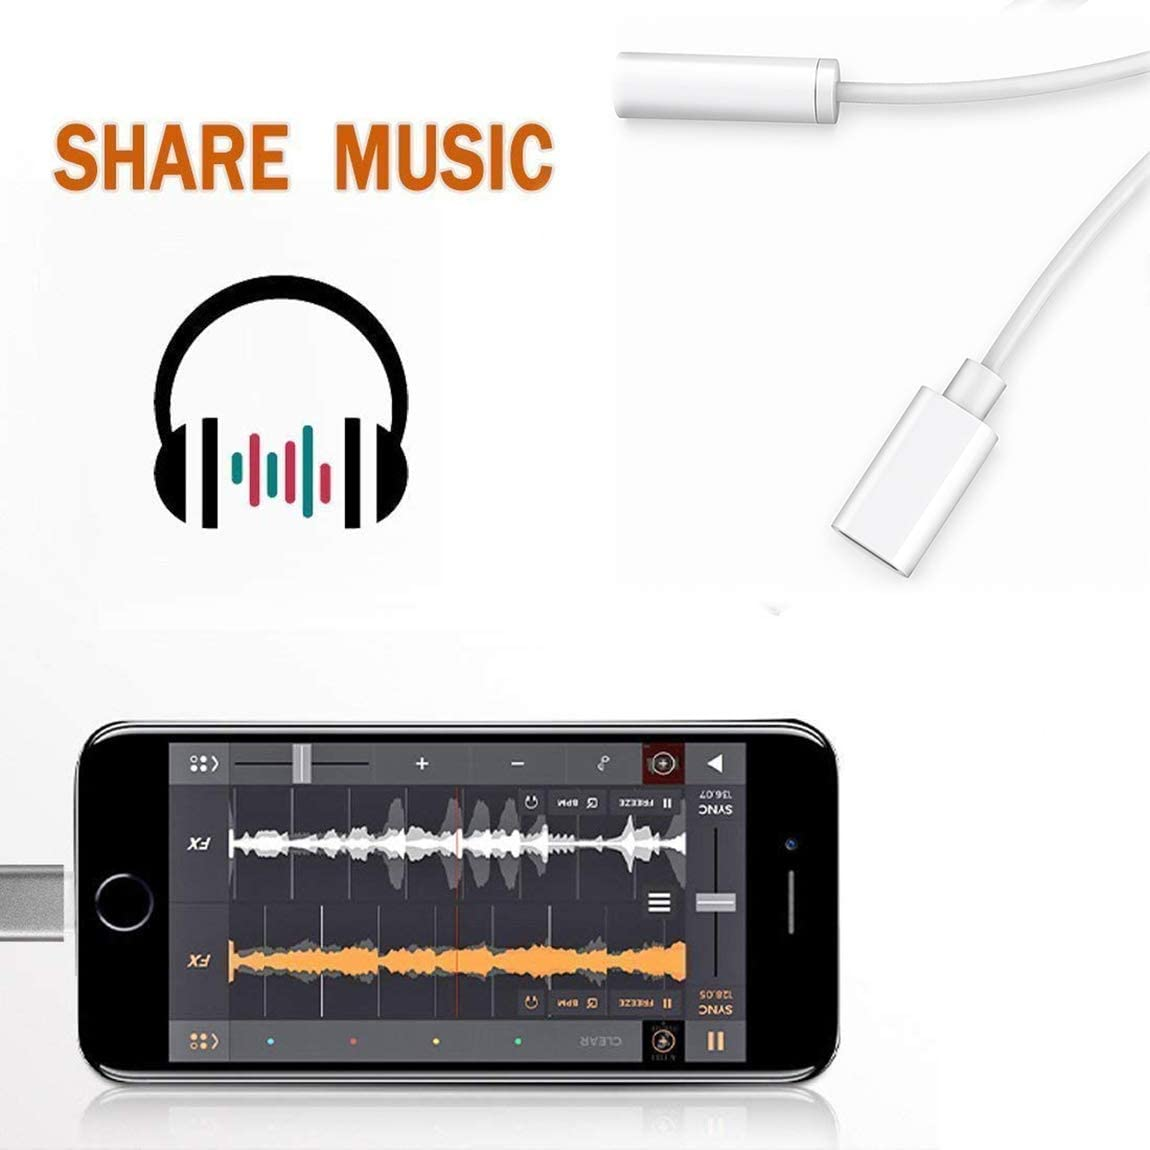 Headphone Adapter for iPhone 8 Adapter Aux Audio to 3.5mm 2 in 1 Jack Cables Dongle for iPhone 7 Earphone Splitter Adapter for iPhone 8 Plus//XR//Xs Music and Charging Compatible Support All iOS-White